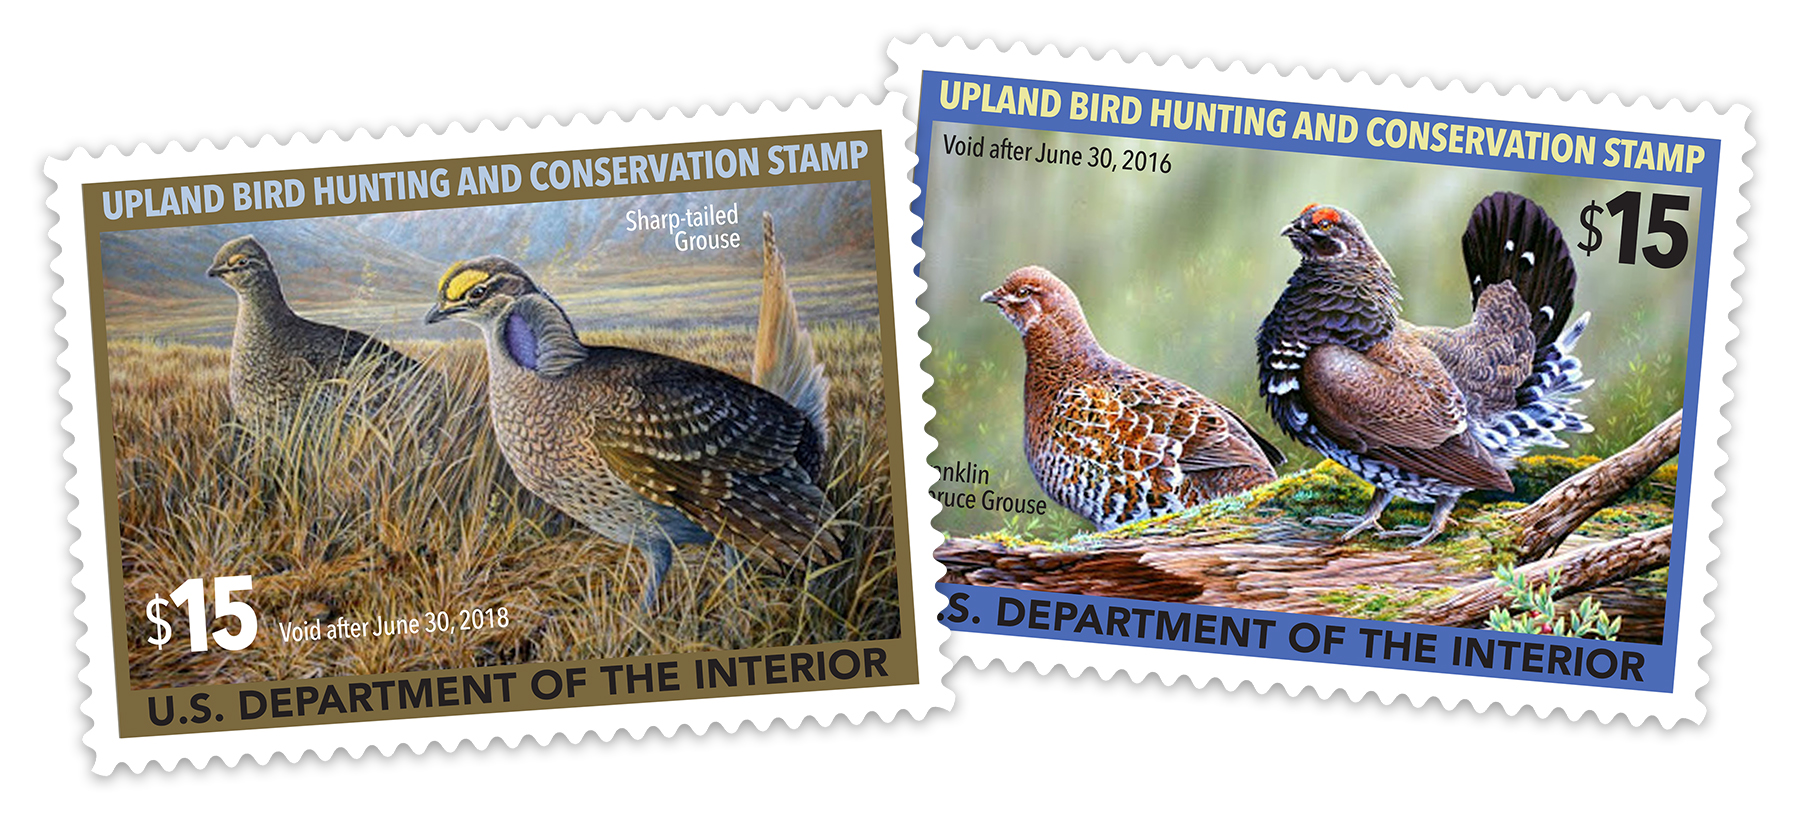 The Upland Stamp